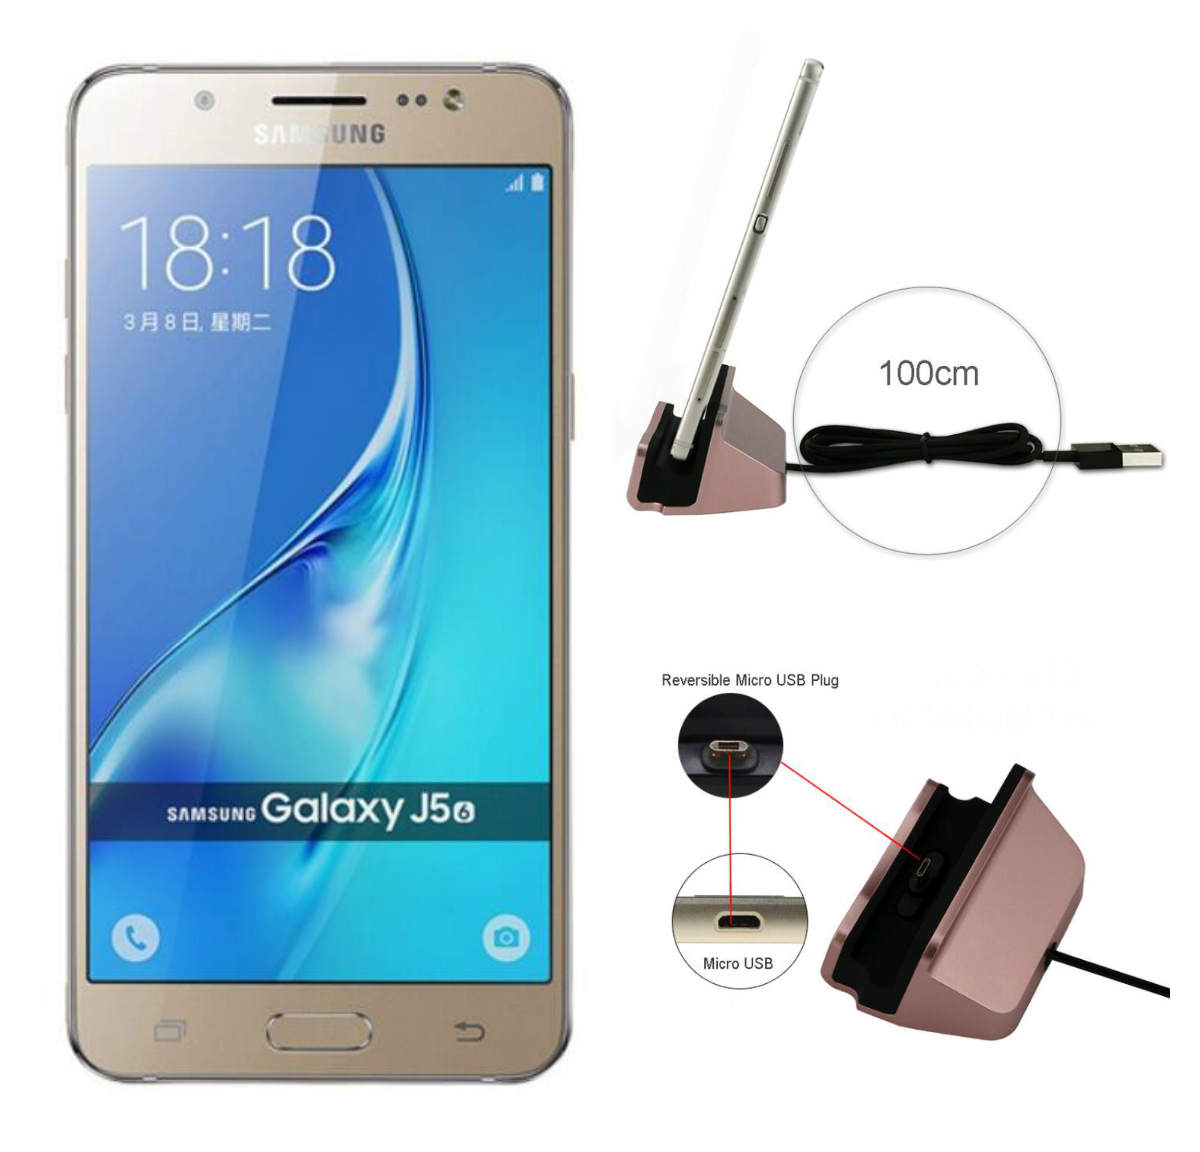 Fast Charging Micro USB Dock Station For <font><b>Samsung</b></font> Galaxy J1 J3 <font><b>J5</b></font> J7 A7 A3 A5 <font><b>2016</b></font> A510 J510 USB Cable <font><b>Charger</b></font> Dock Station Stand